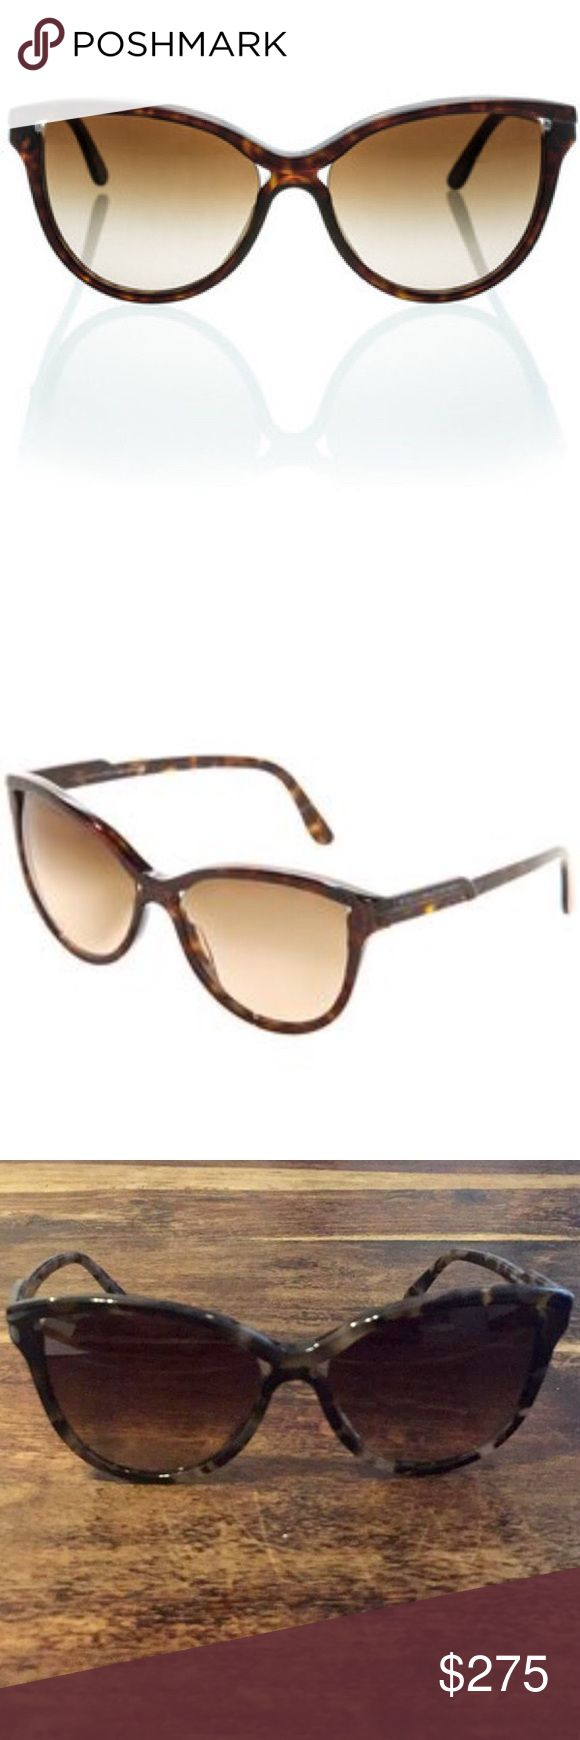 Stella McCartney Tortoise Cat Eye Sunglasses 🕶 Stella McCartney Sunglasses SM4038 Cat Eye Dark Brown Tortoise frames 58mm 18mm 145mm Acetate, lens-Nylon, Brown  100% authentic. Brown Gradient Lenses. 100% UVA + UVB Protection. Handmade in Italy $345 Retail Stella McCartney Accessories Sunglasses